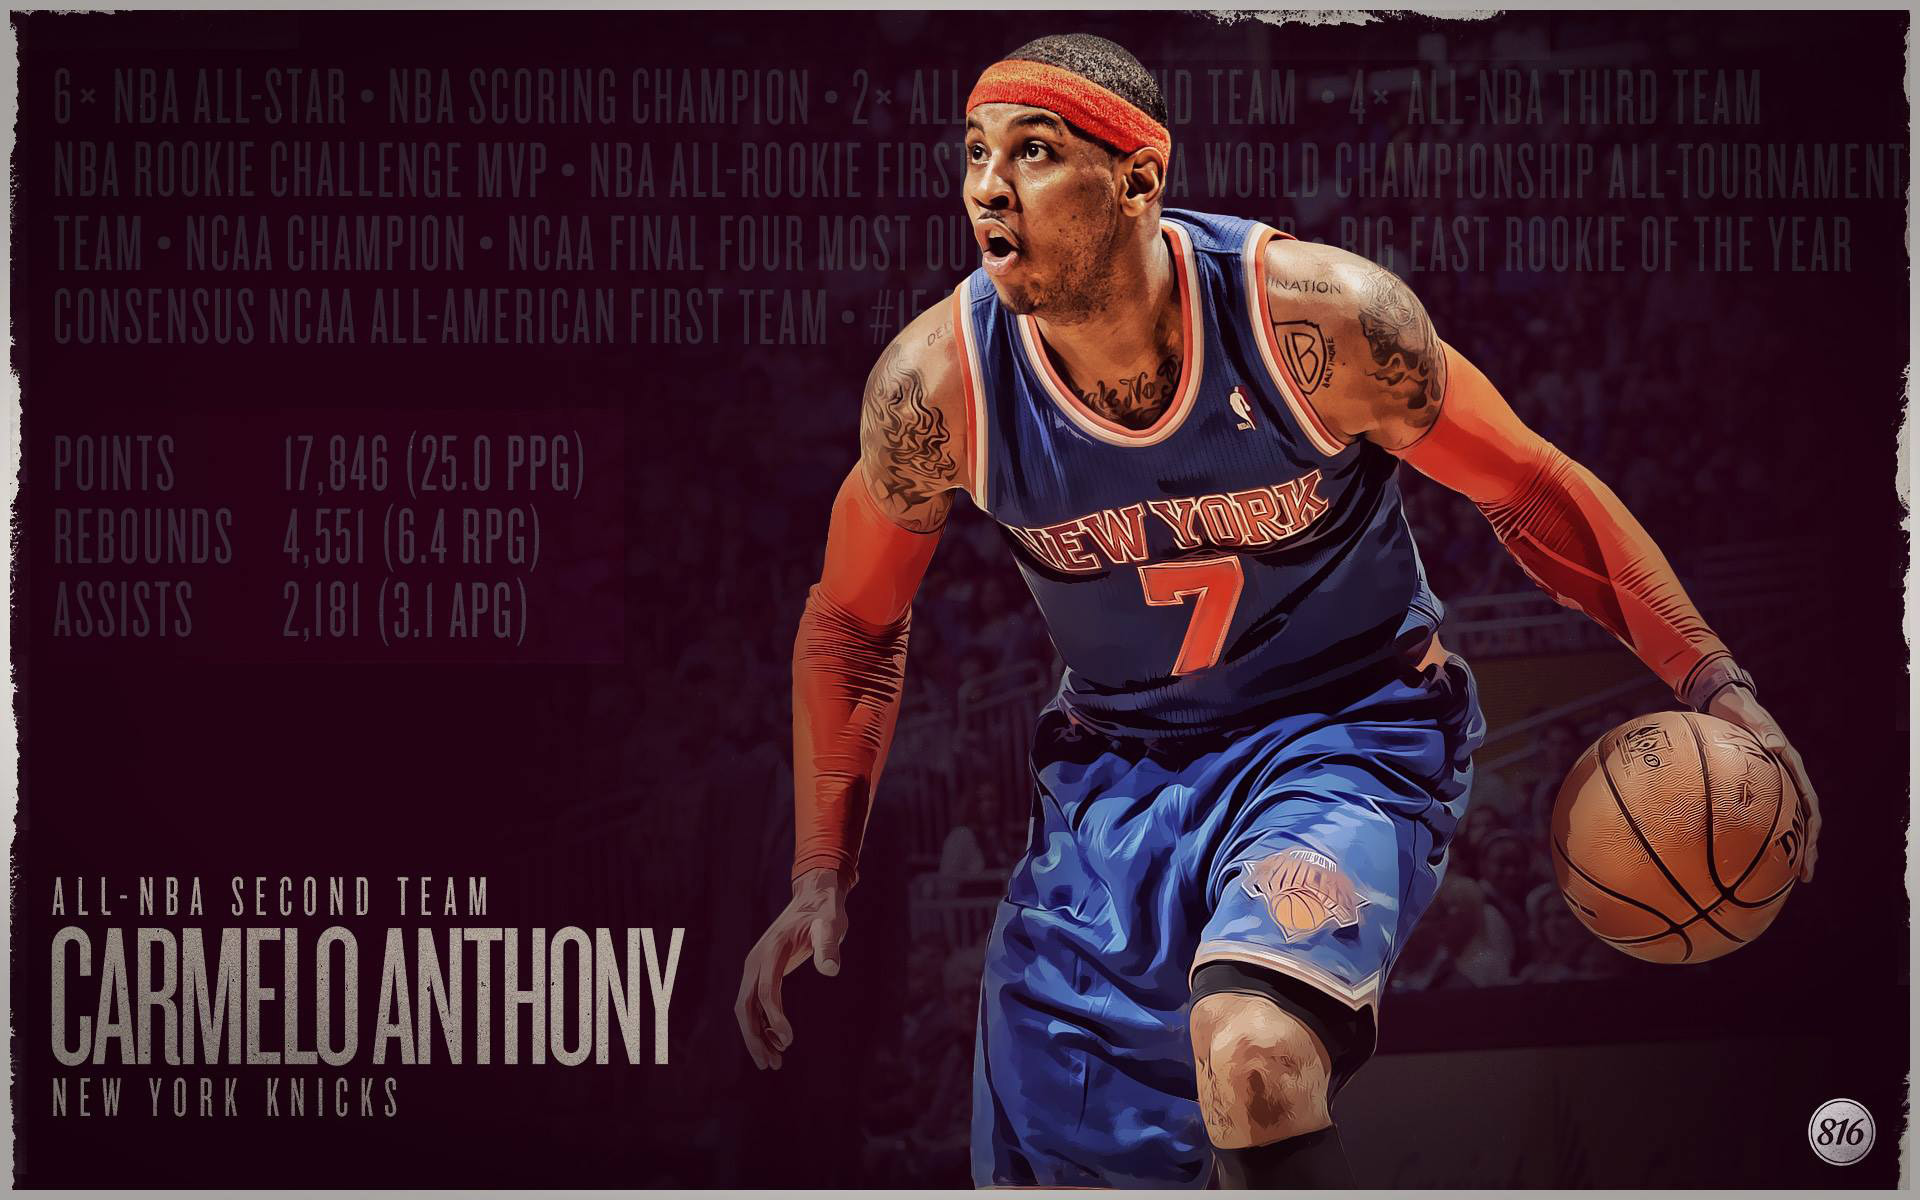 1920x1200 Carmelo Anthony 2013 All-NBA Second Team 1920×1200 Wallpaper